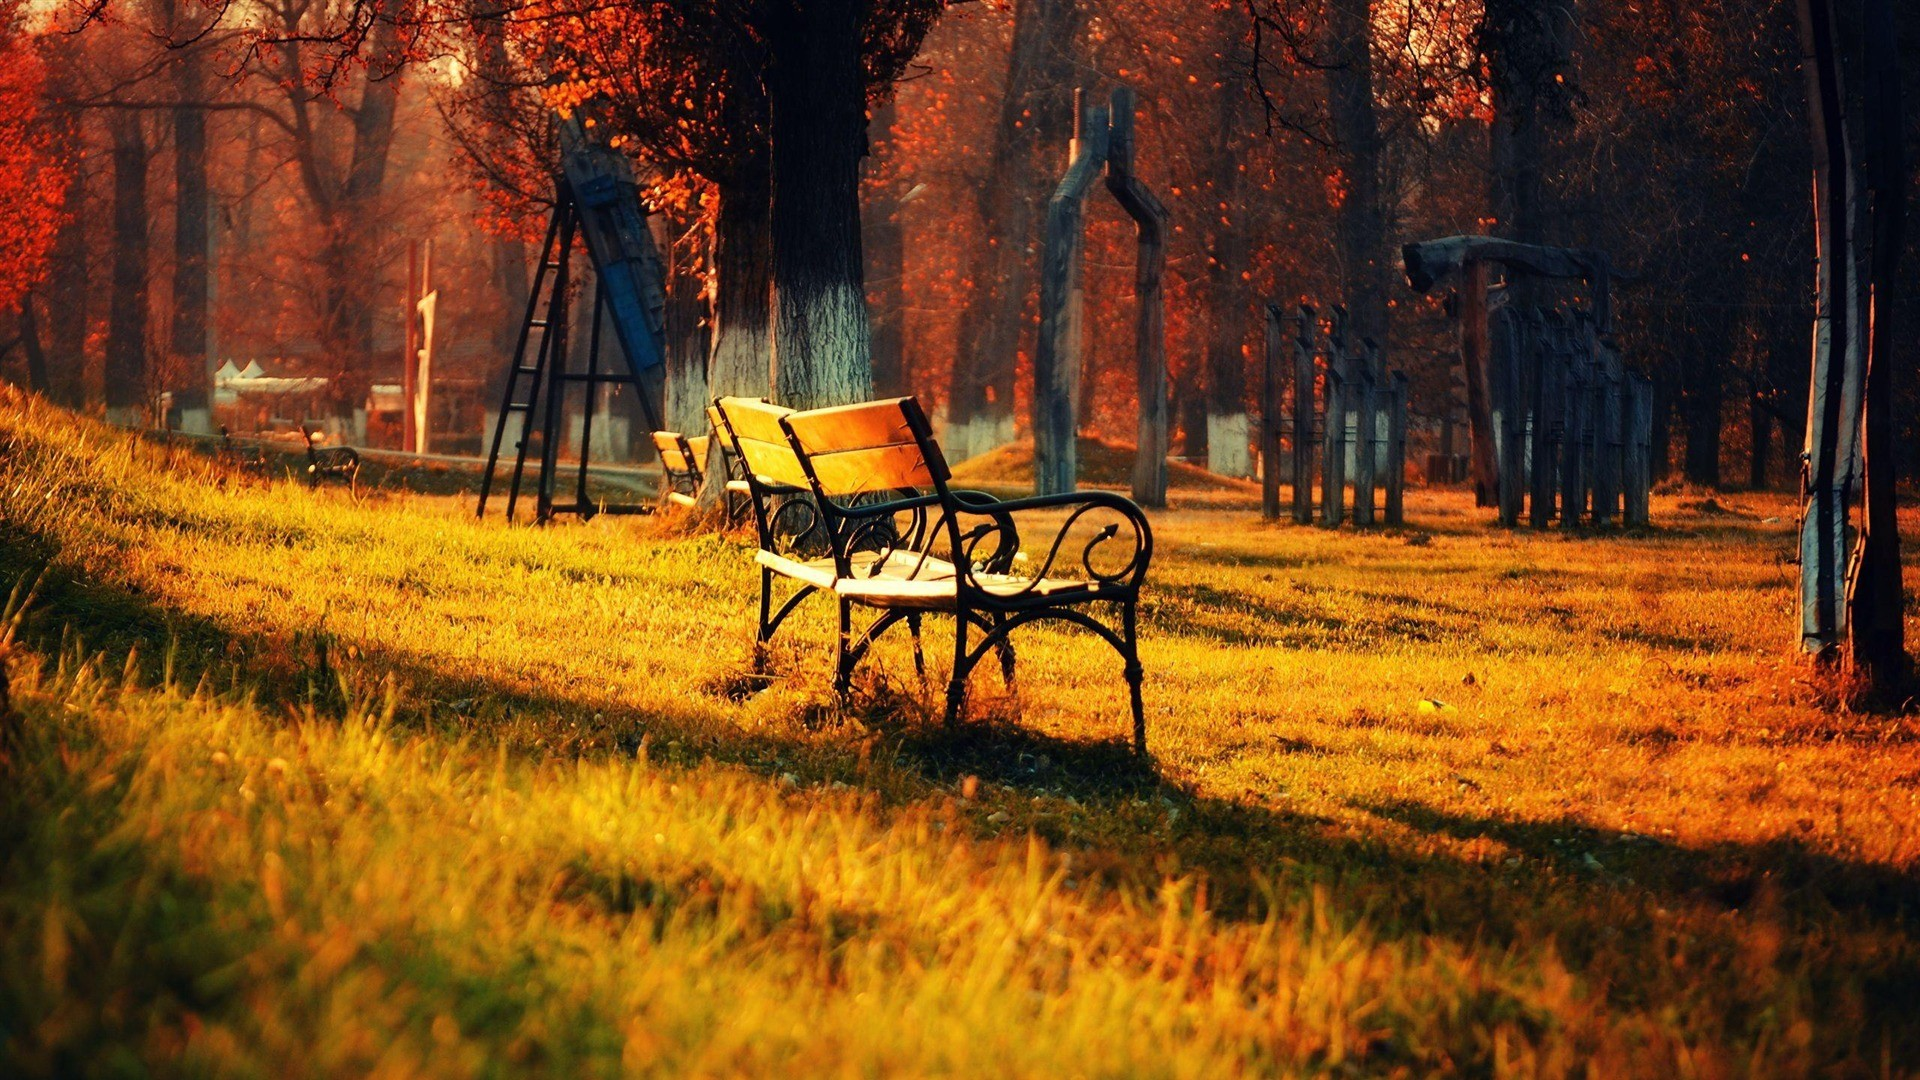 autumn wallpaper widescreen ·① download free amazing high